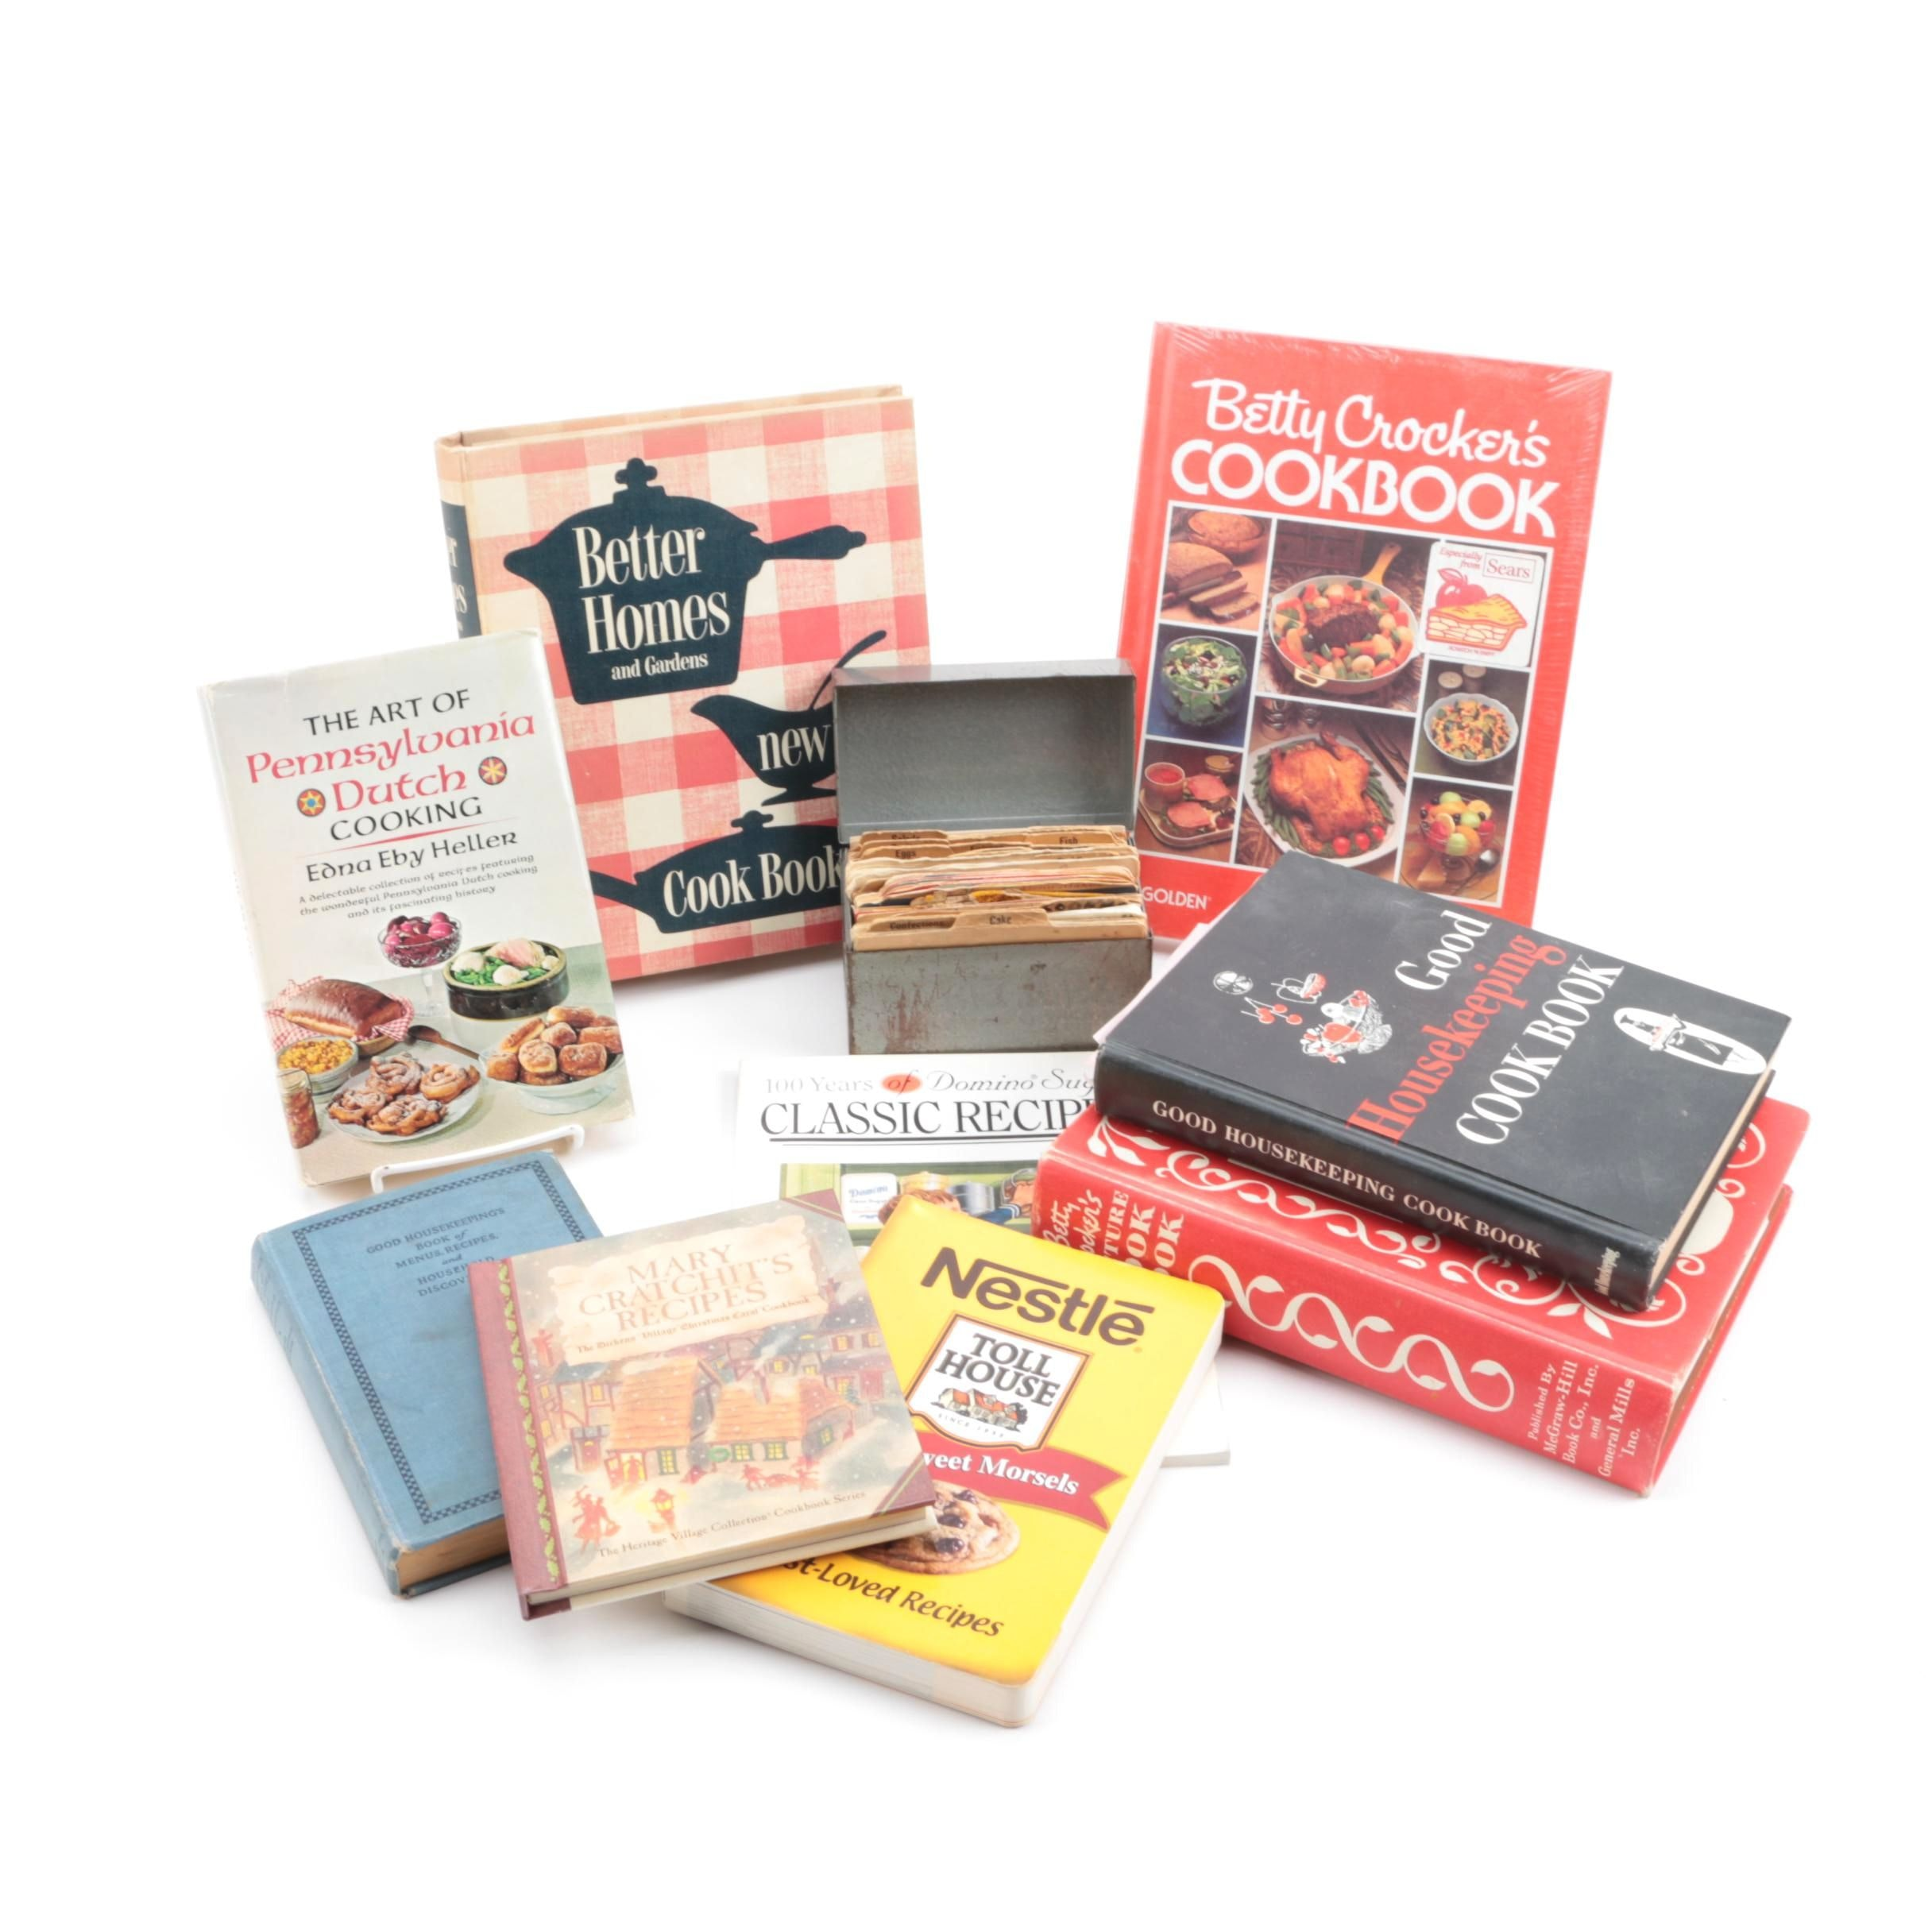 Cookbooks featuring Betty Crocker and Better Homes